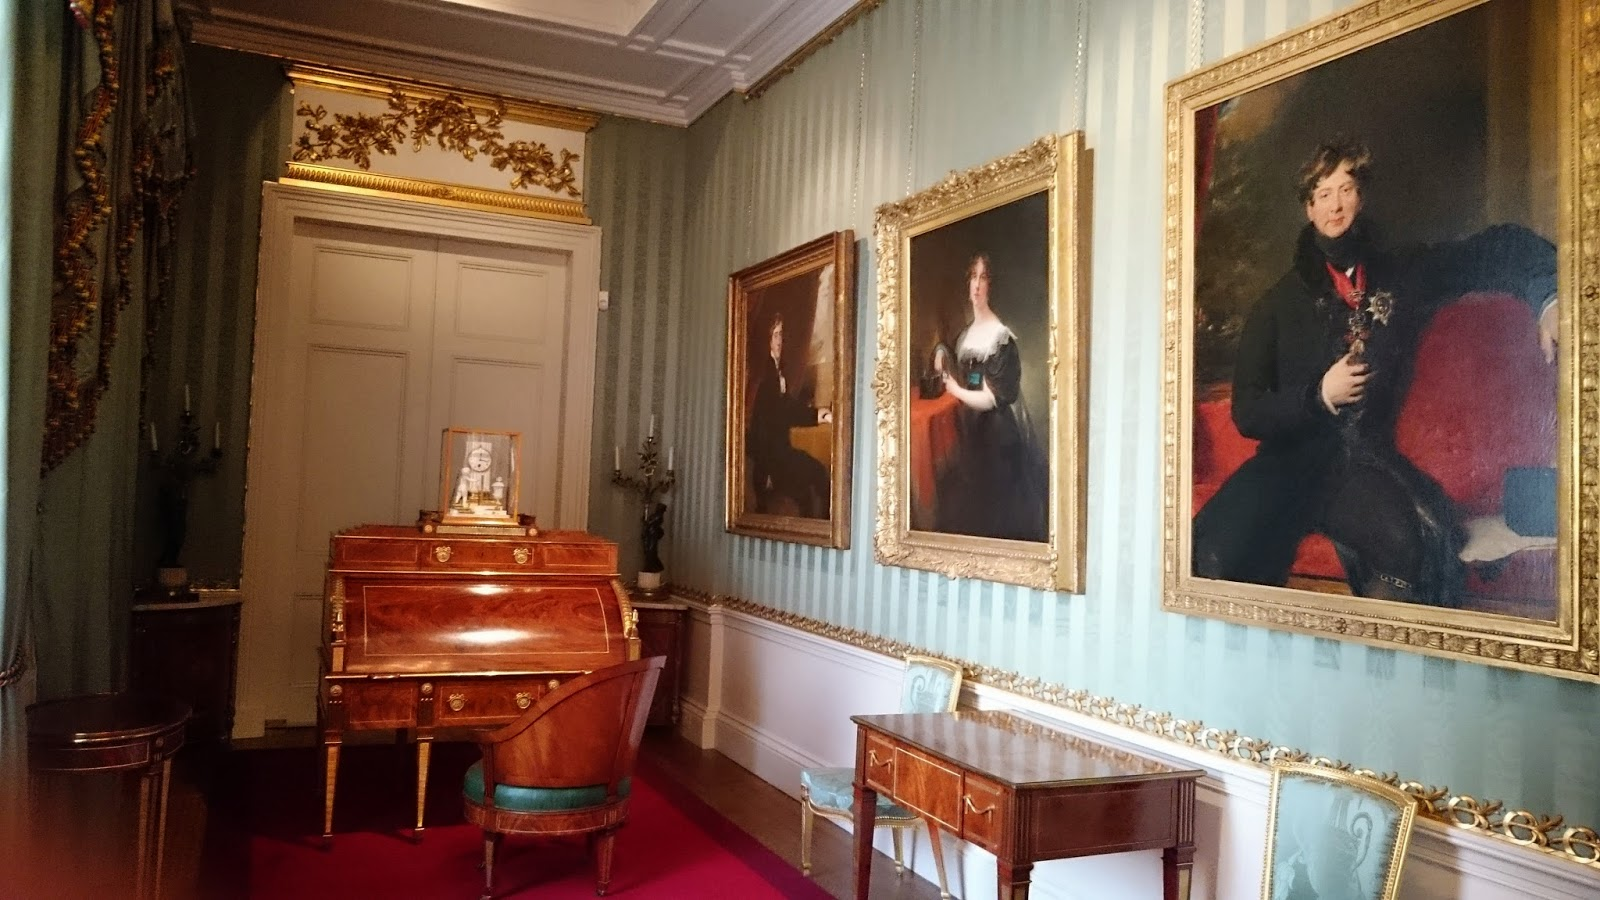 The South Sketch Gallery, Chatsworth